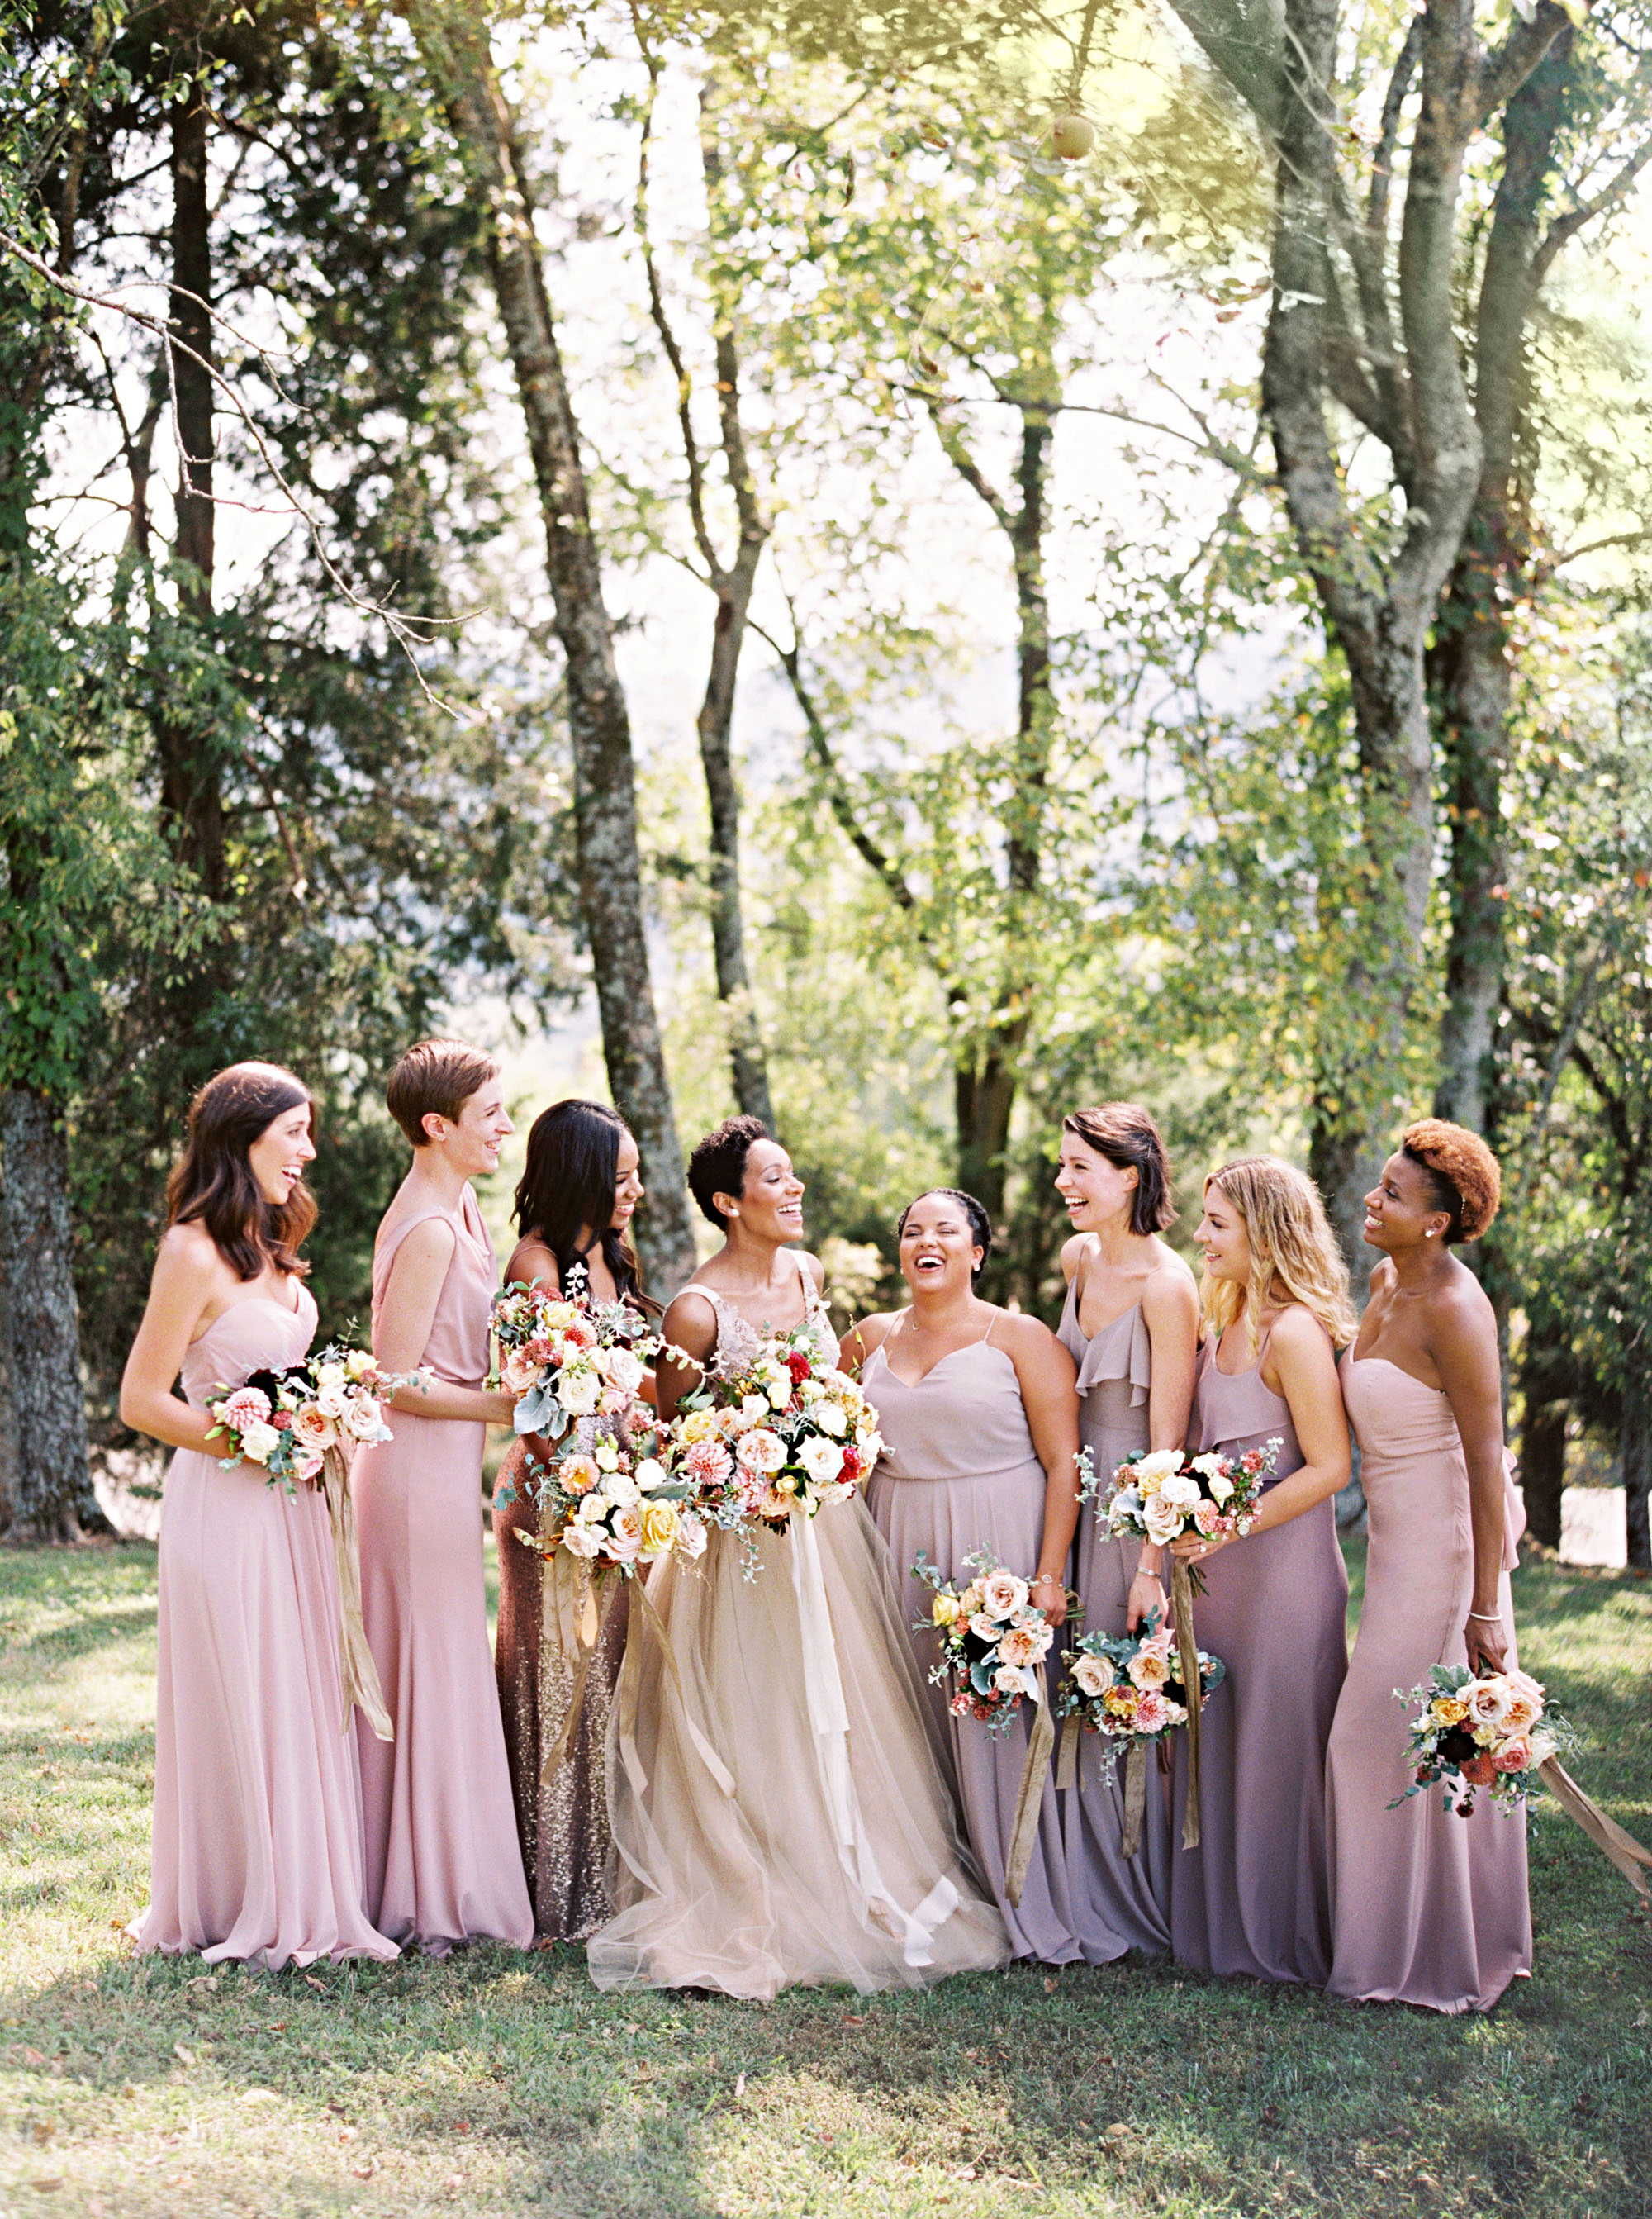 Yes, It Is Possible to Reuse a Bridesmaids' Dress. Here's How